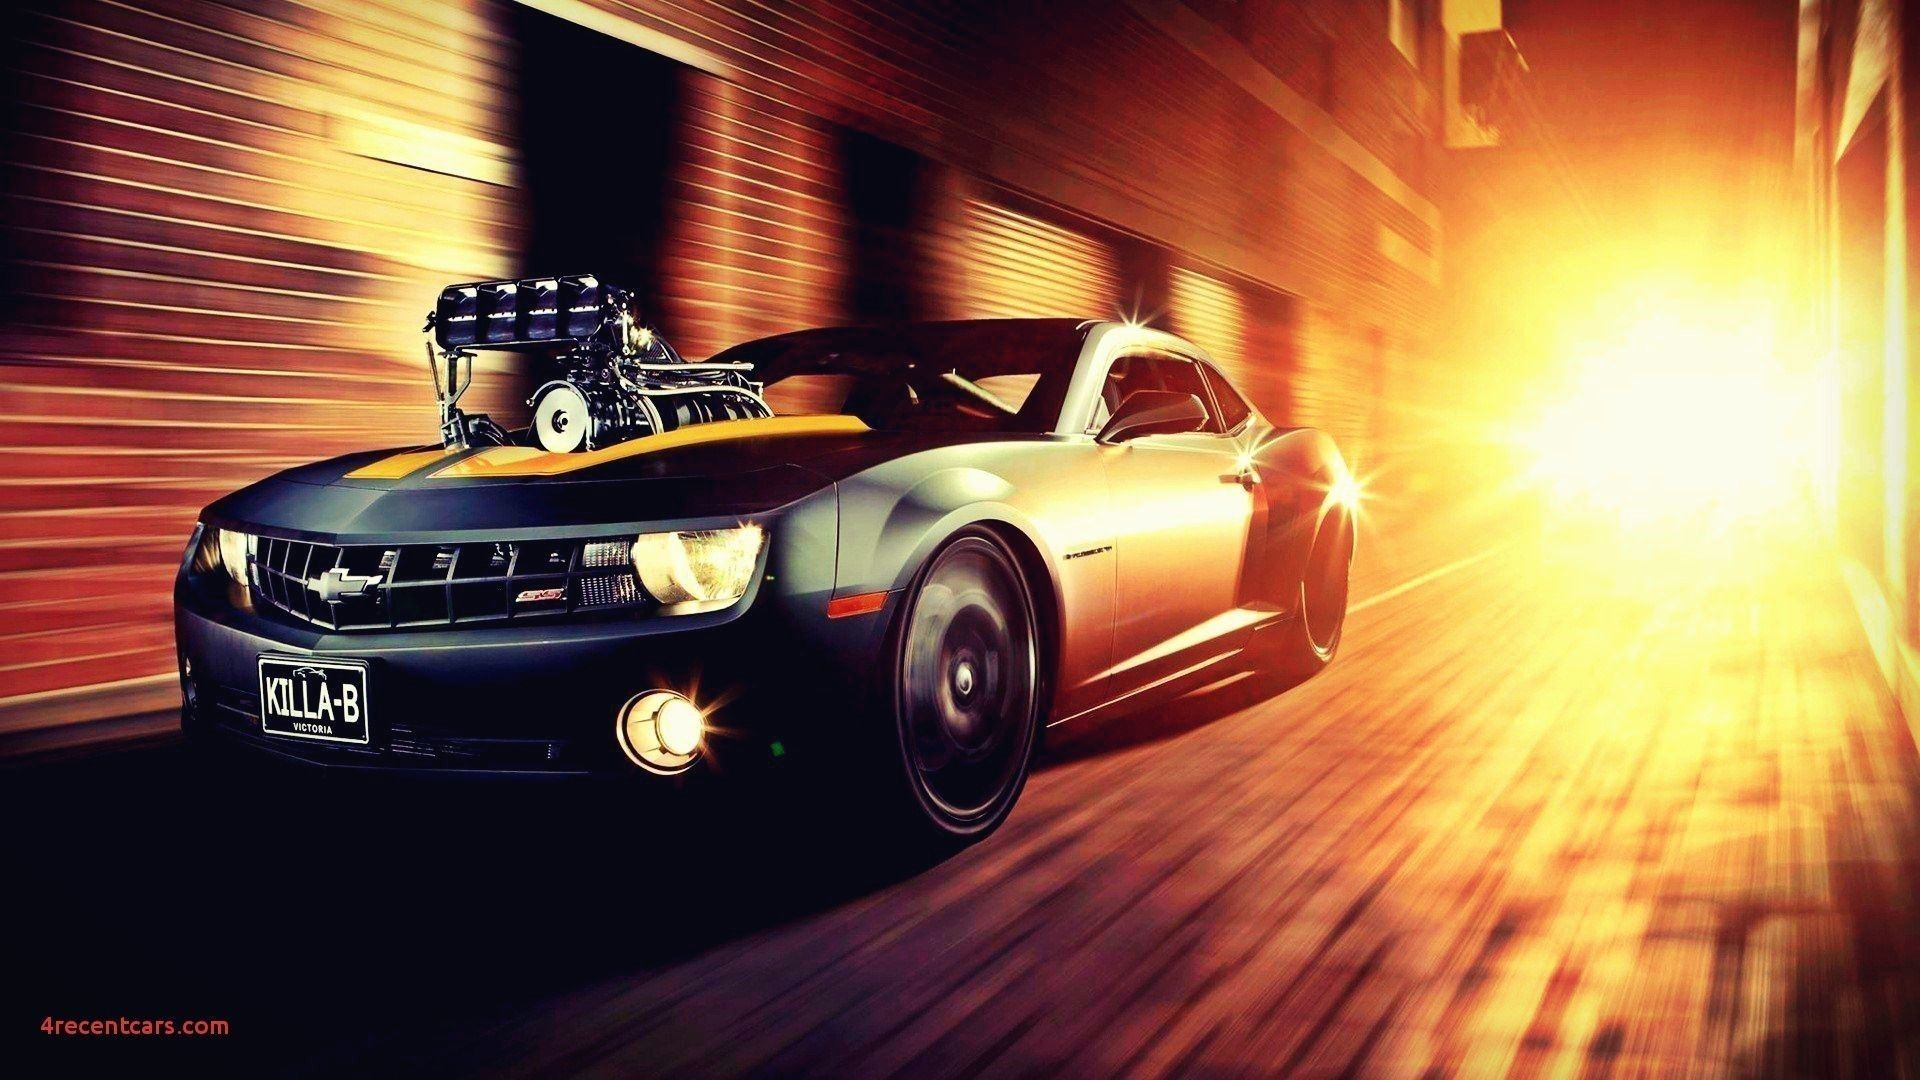 Awesome Cars Photos Awesomephotoshd Car Wallpapers Car Backgrounds Car